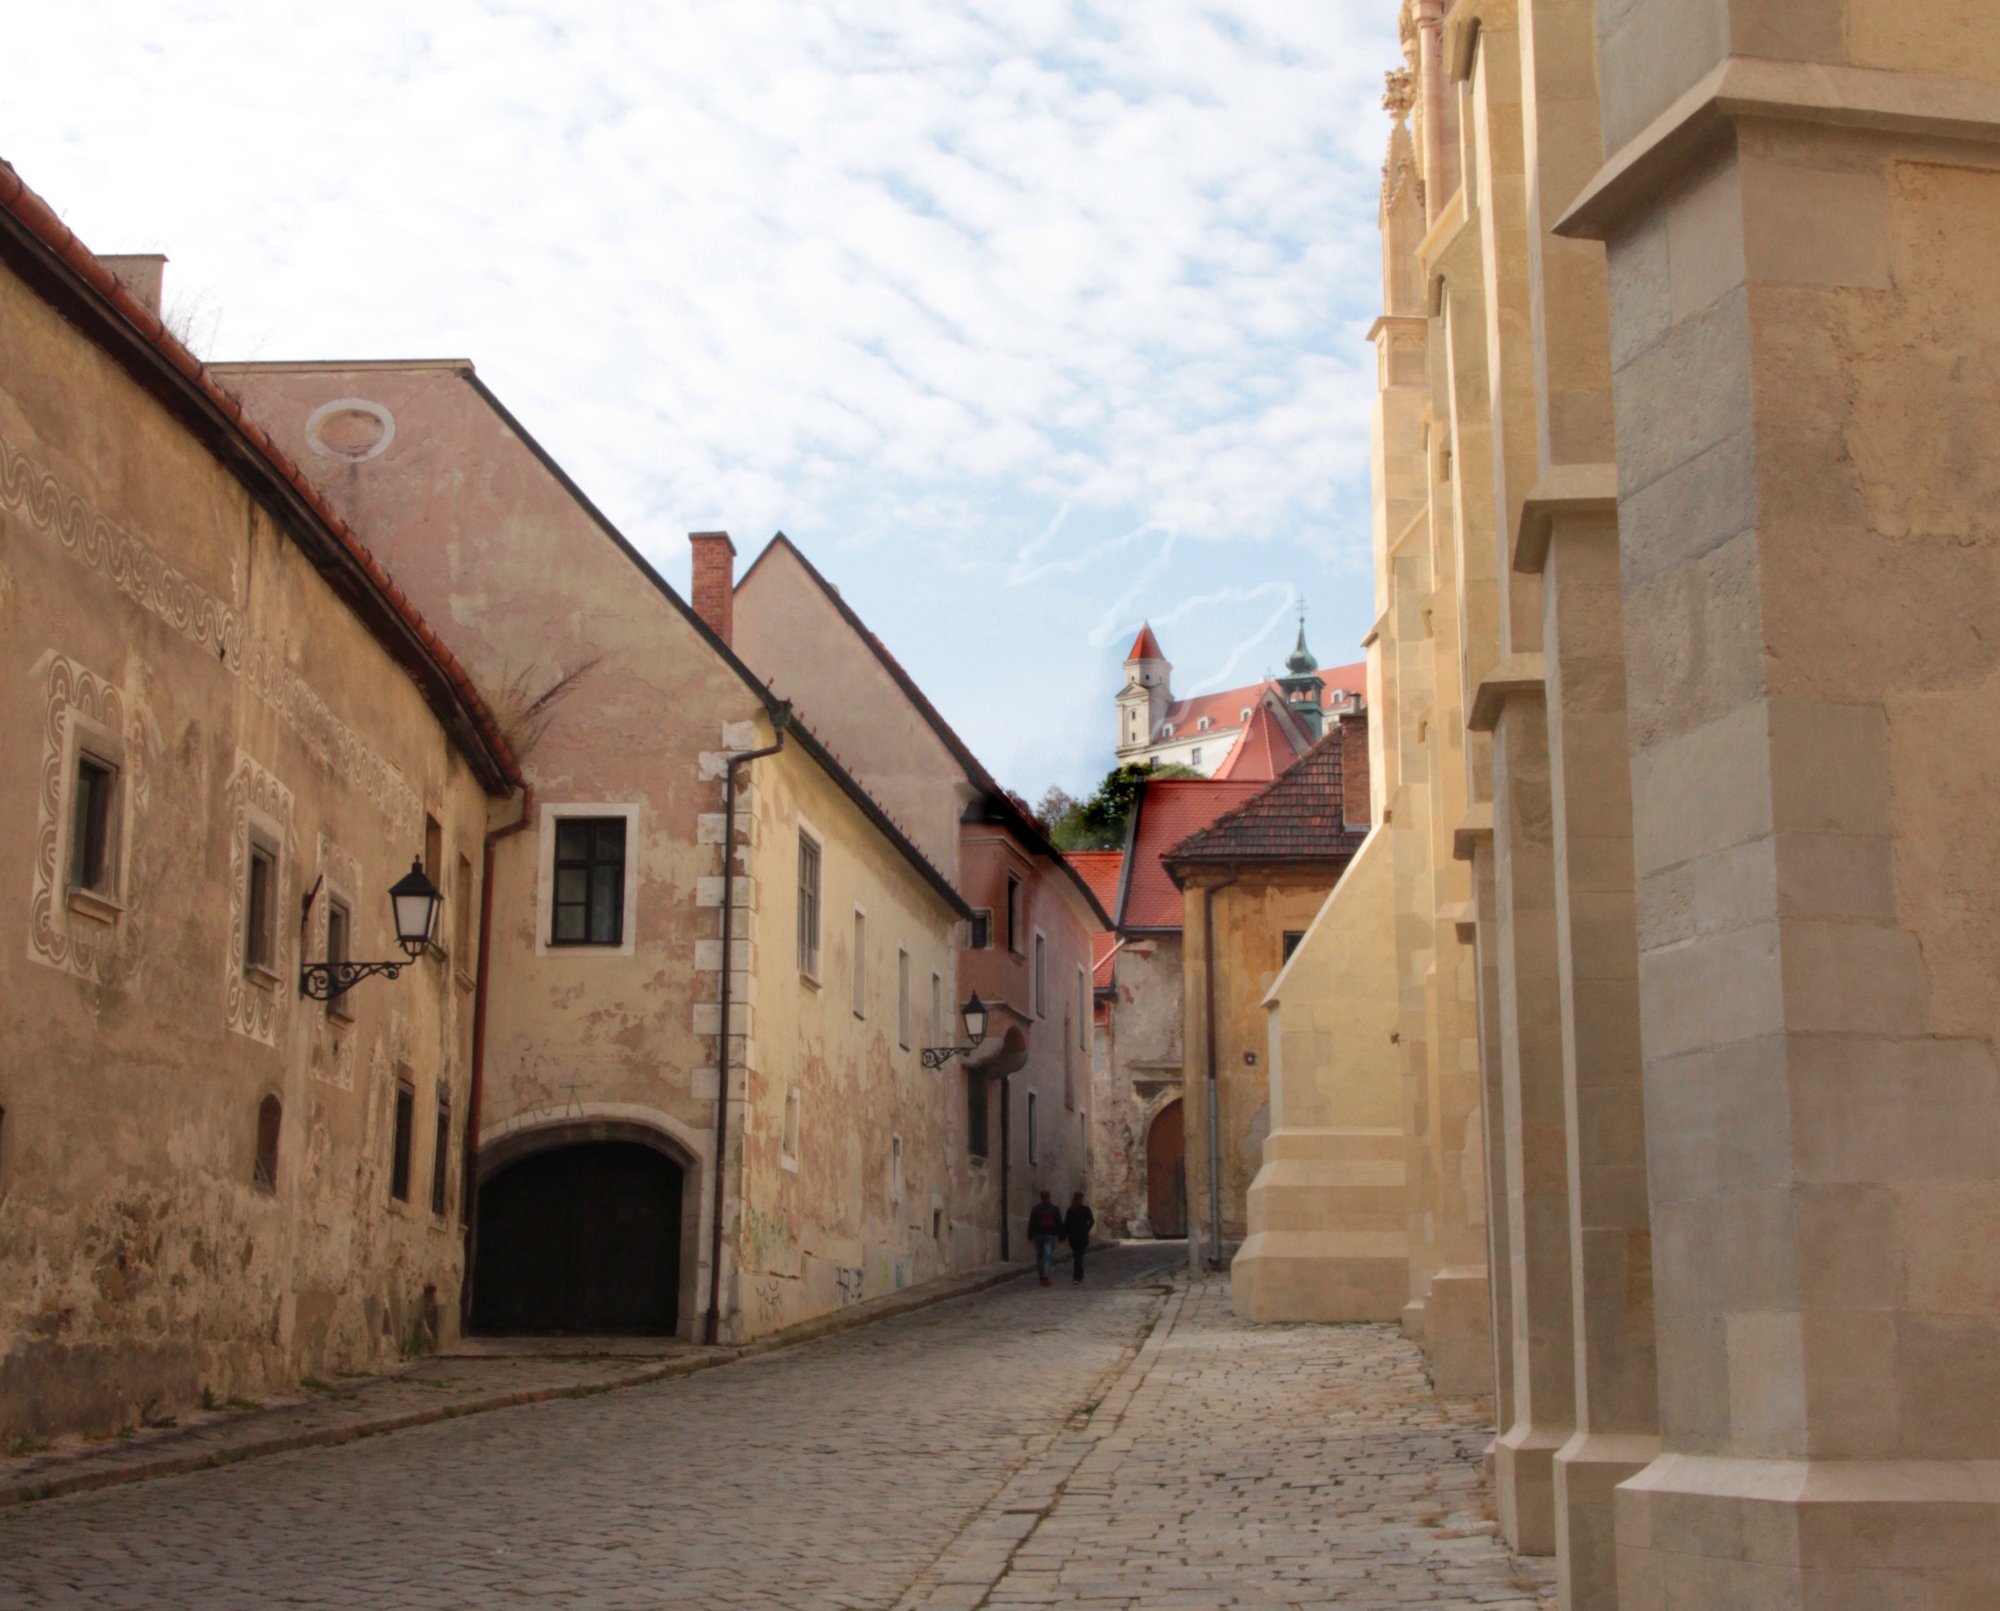 Cobbled streets in Bratislava old town